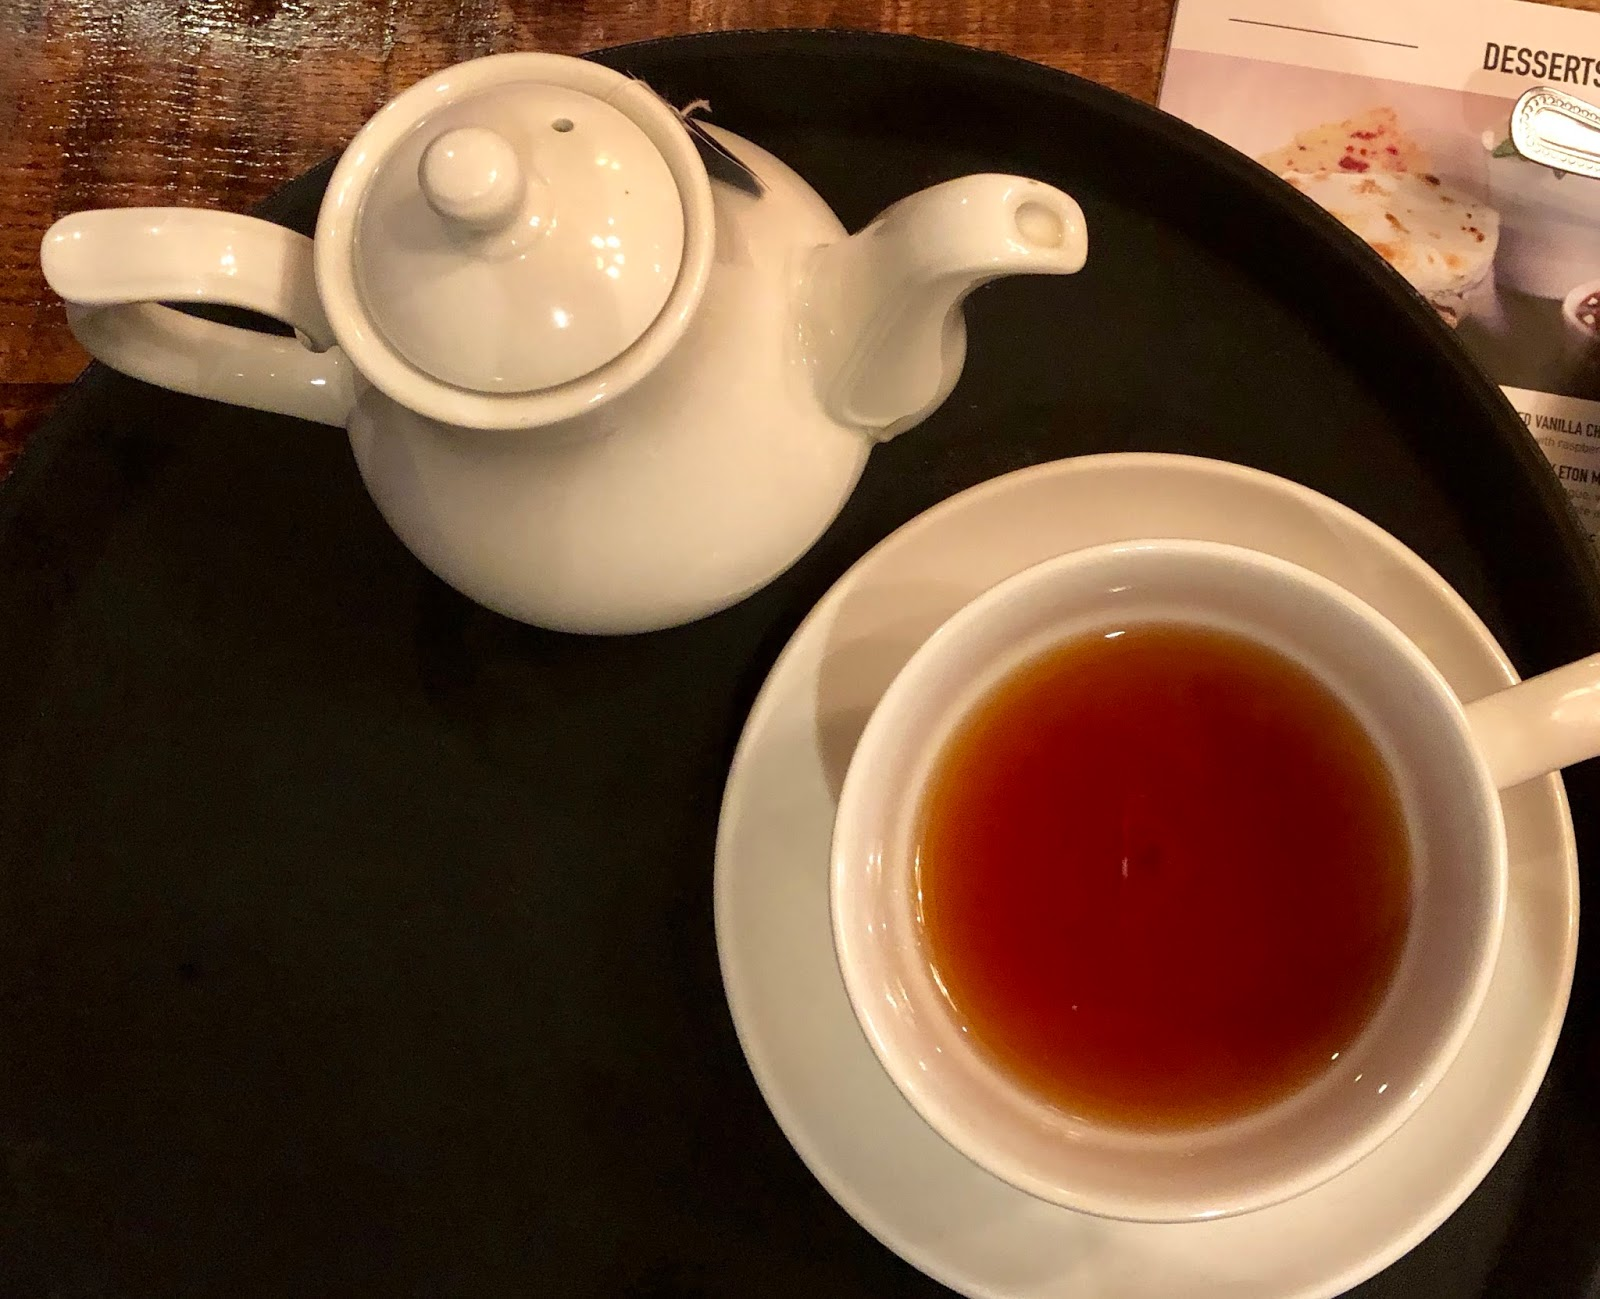 Tea pot and tea cup with earl grey tea